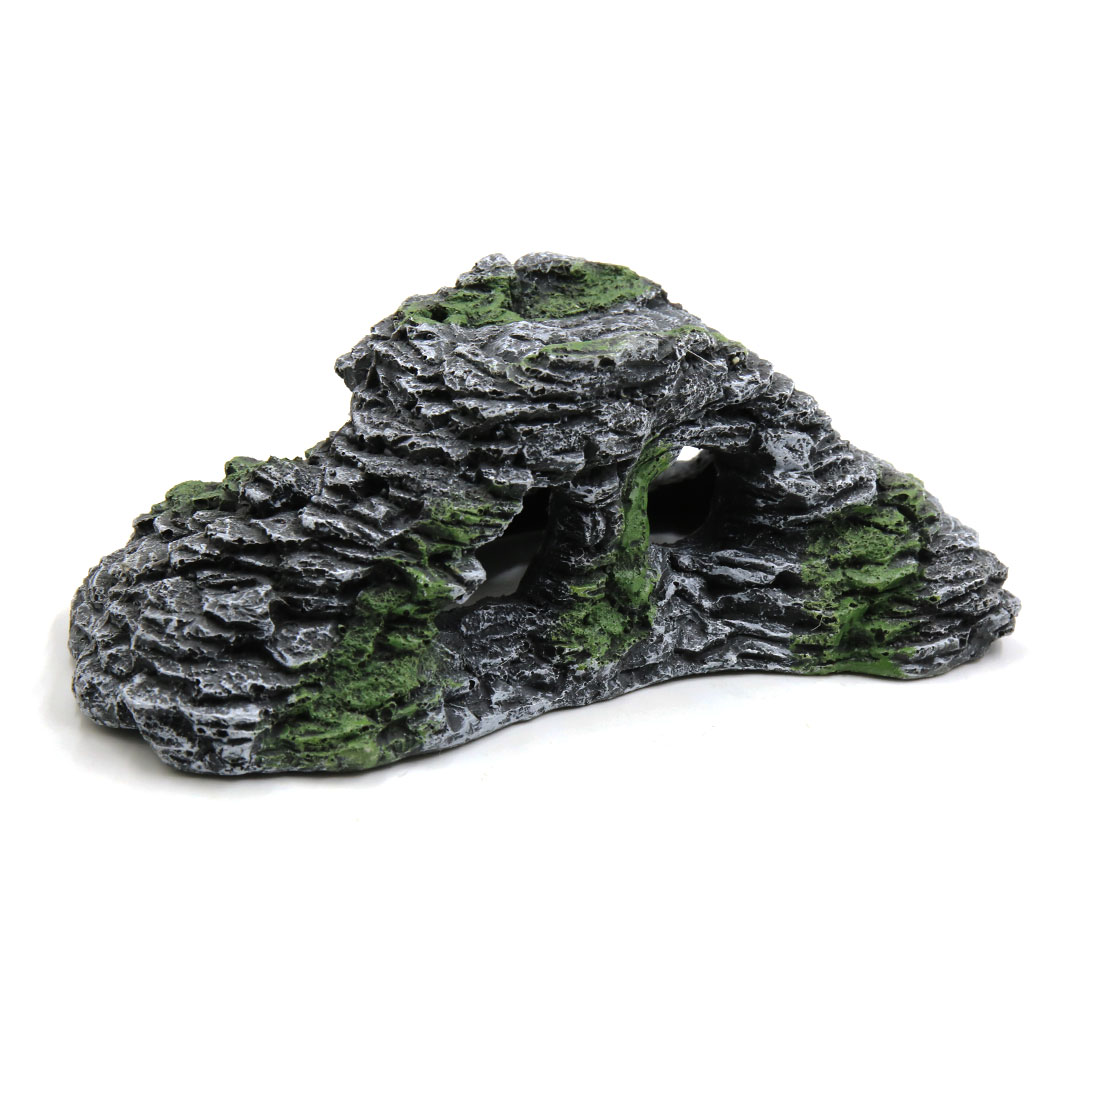 Dark Gray Resin Turtle Climb Stone Ramp Habitat Decor Ornament for Aquarium